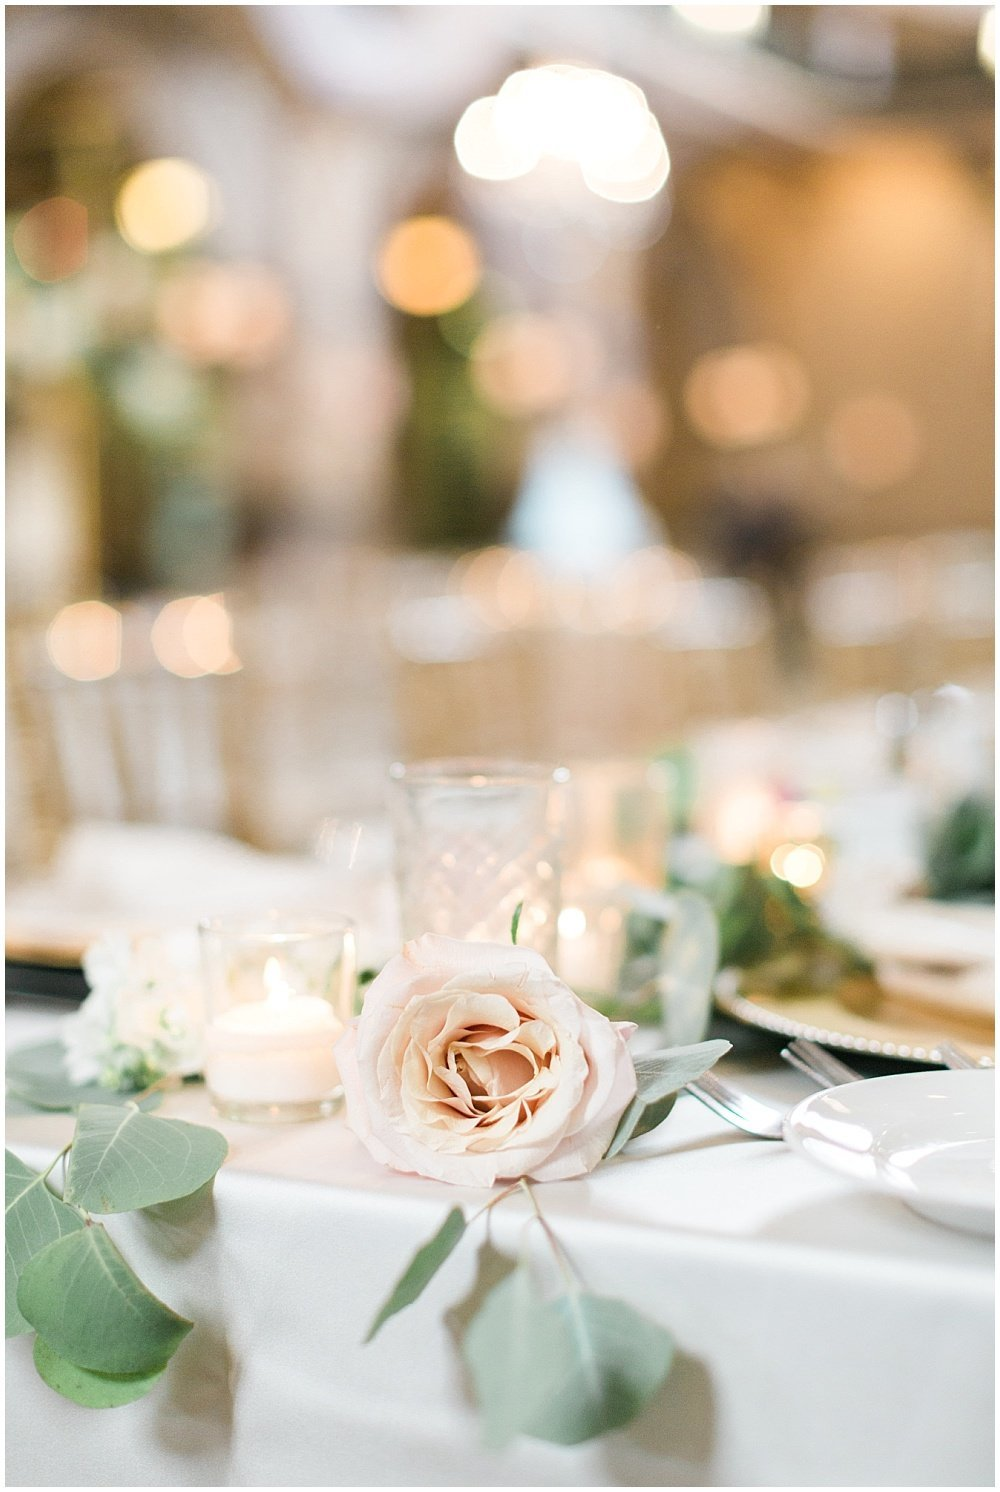 Summer-Mexican-Inspired-Gold-And-Floral-Crowne-Plaza-Indianapolis-Downtown-Union-Station-Wedding-Cory-Jackie-Wedding-Photographers-Jessica-Dum-Wedding-Coordination_photo___0036